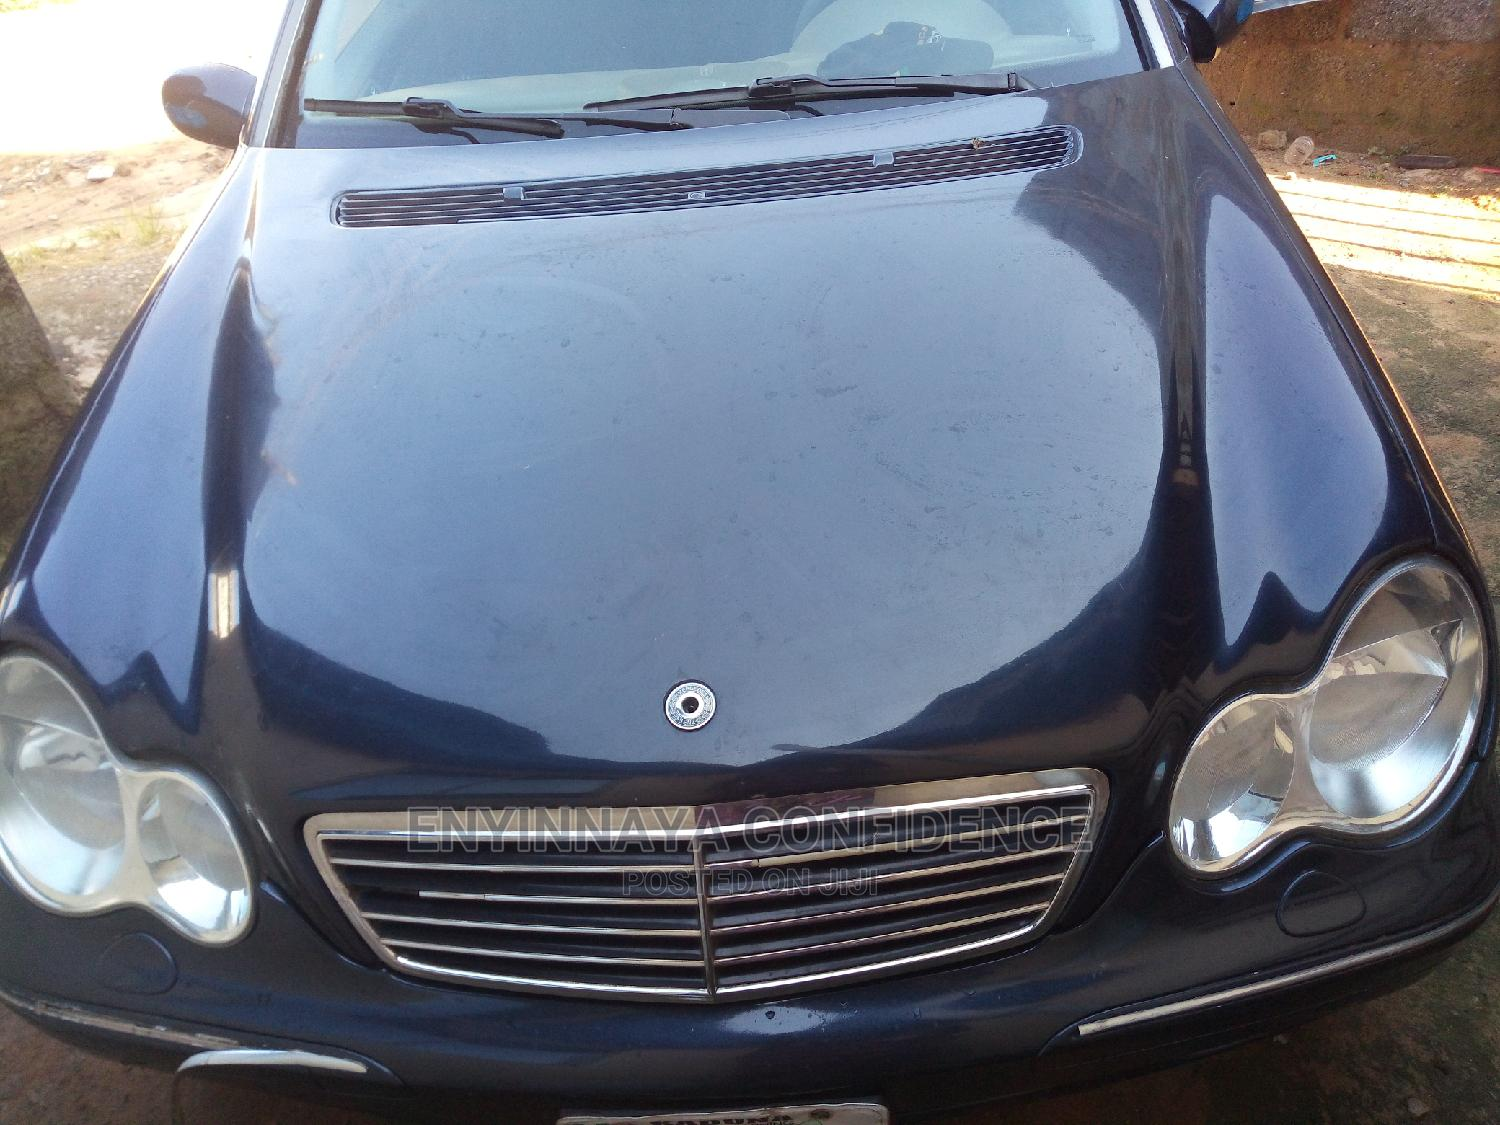 Mercedes-Benz C240 2003 Blue   Cars for sale in Central Business District, Abuja (FCT) State, Nigeria